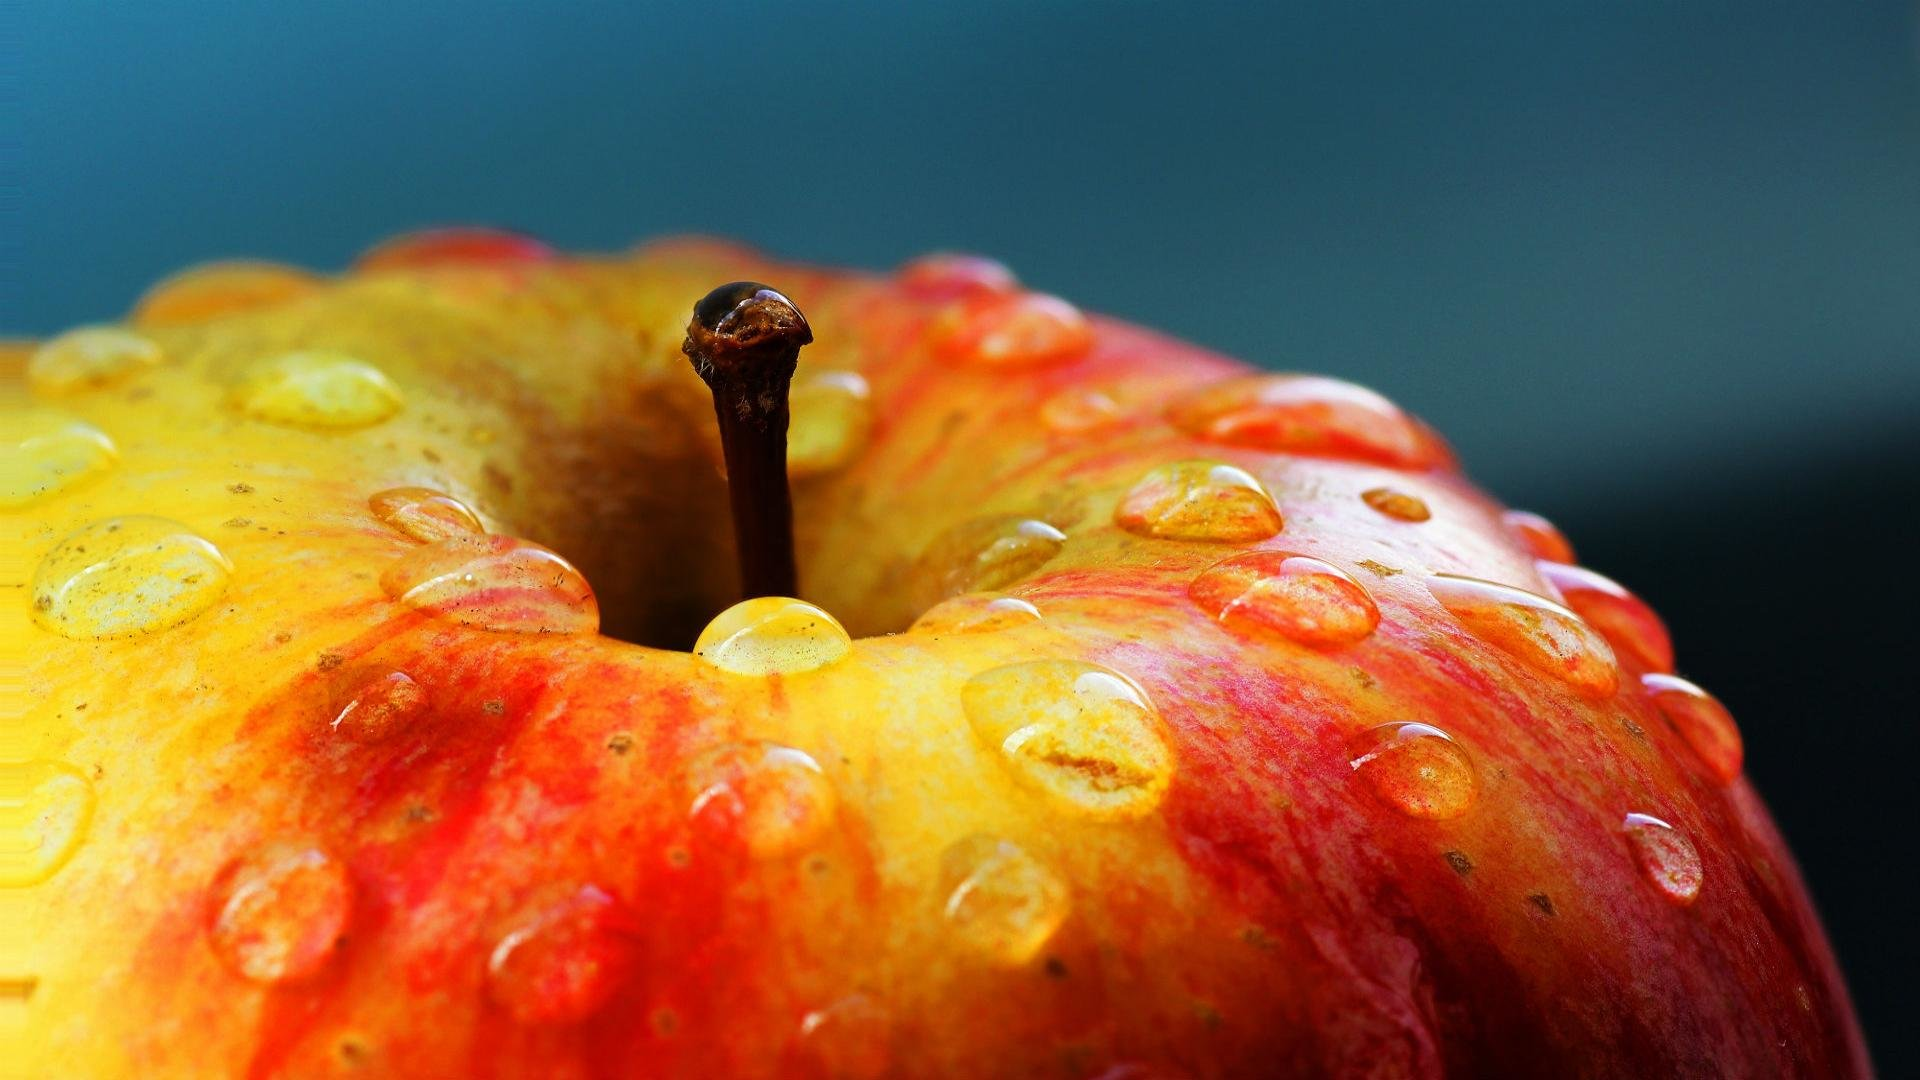 Free Apple fruit high quality wallpaper ID:296245 for full hd computer